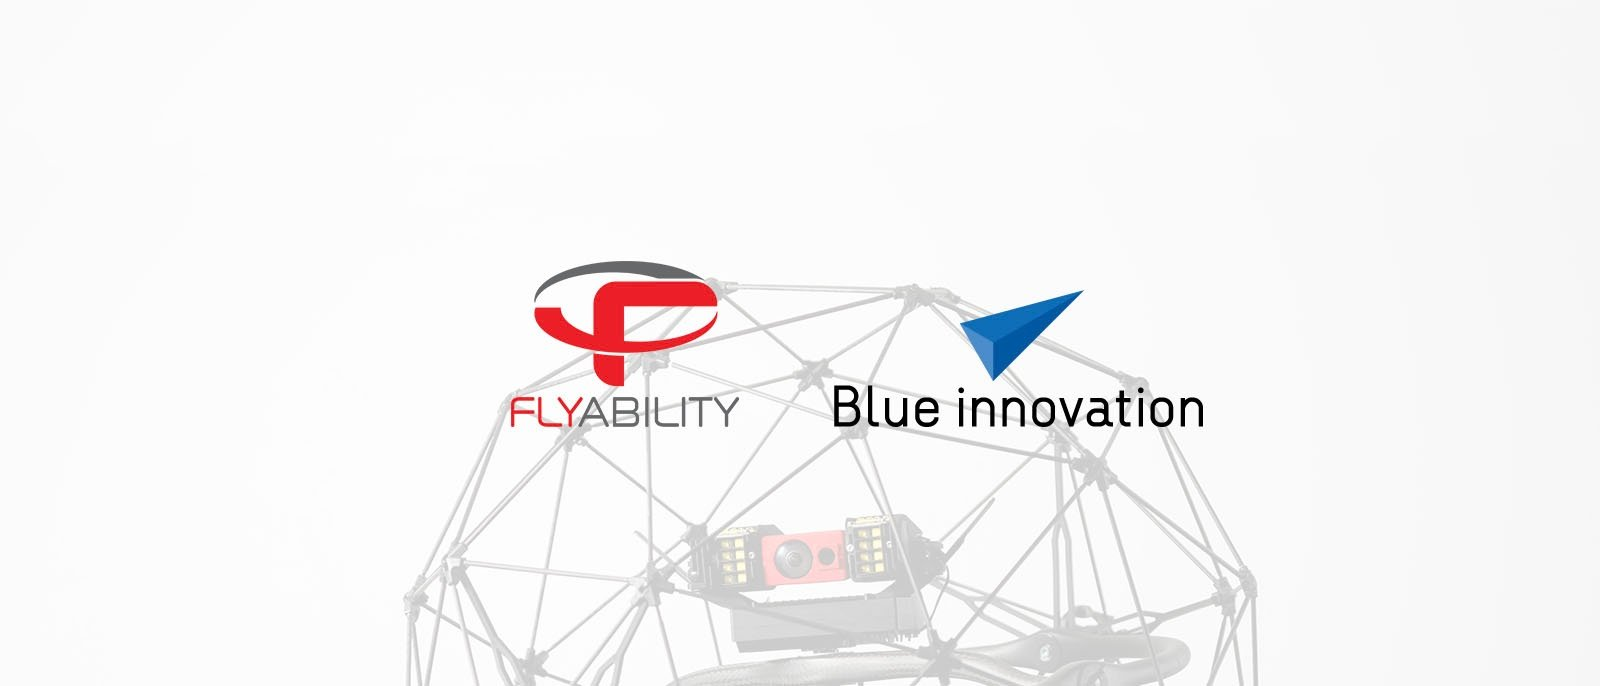 Blue innovation and Flyability form business partnership to bring indoor inspection to the Japanese market